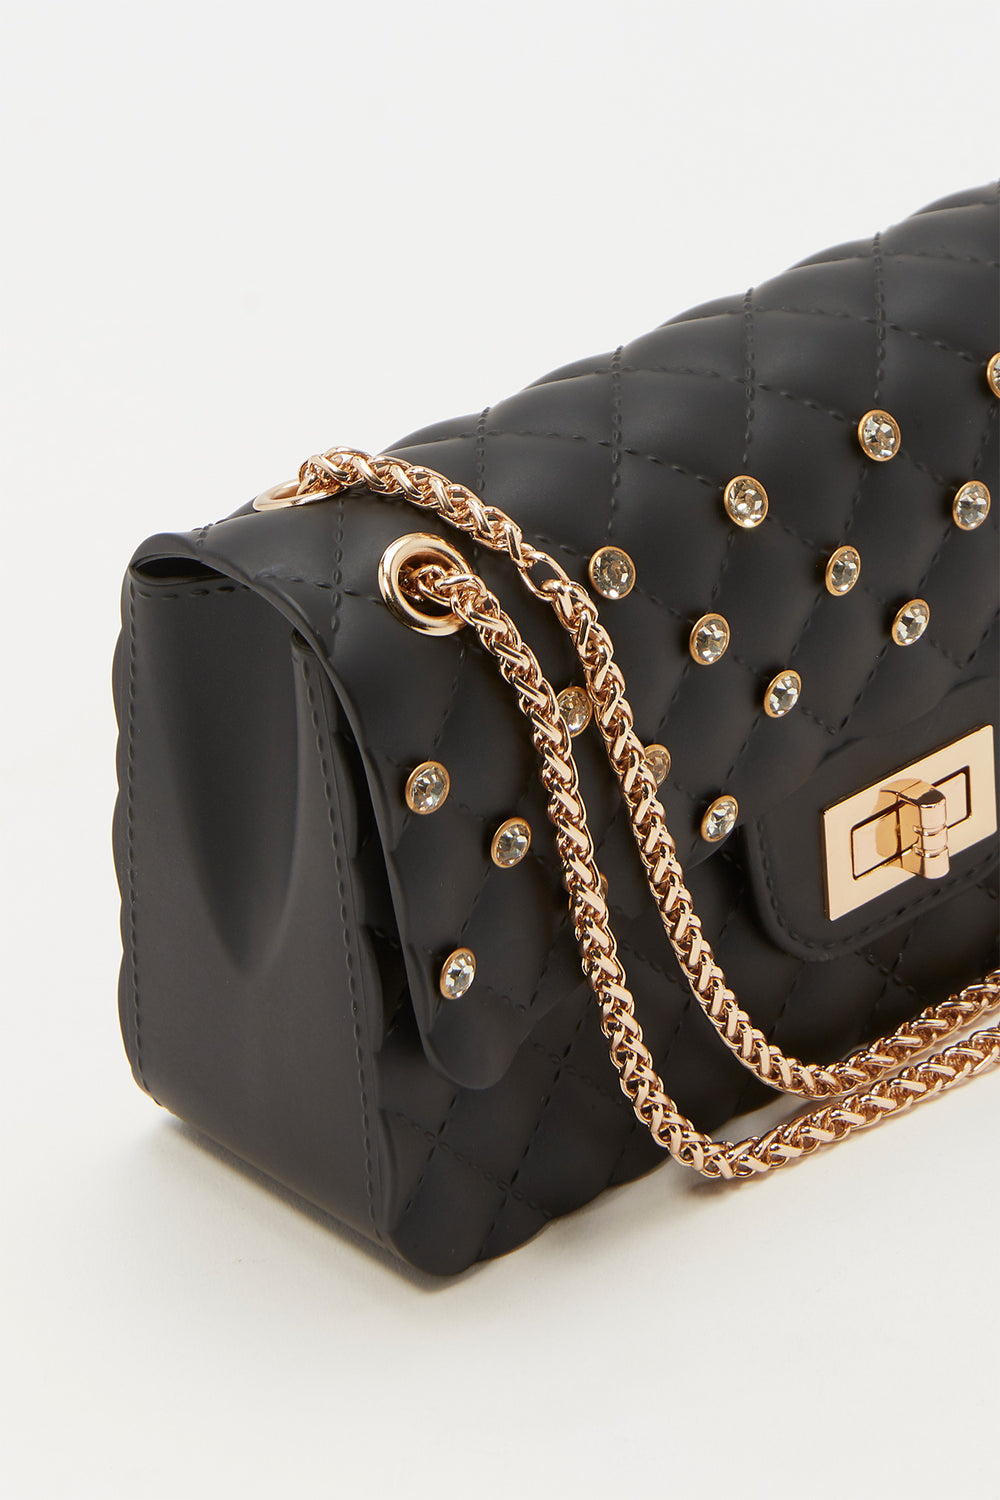 Rhinestone Quilted Crossbody Chain Bag Black